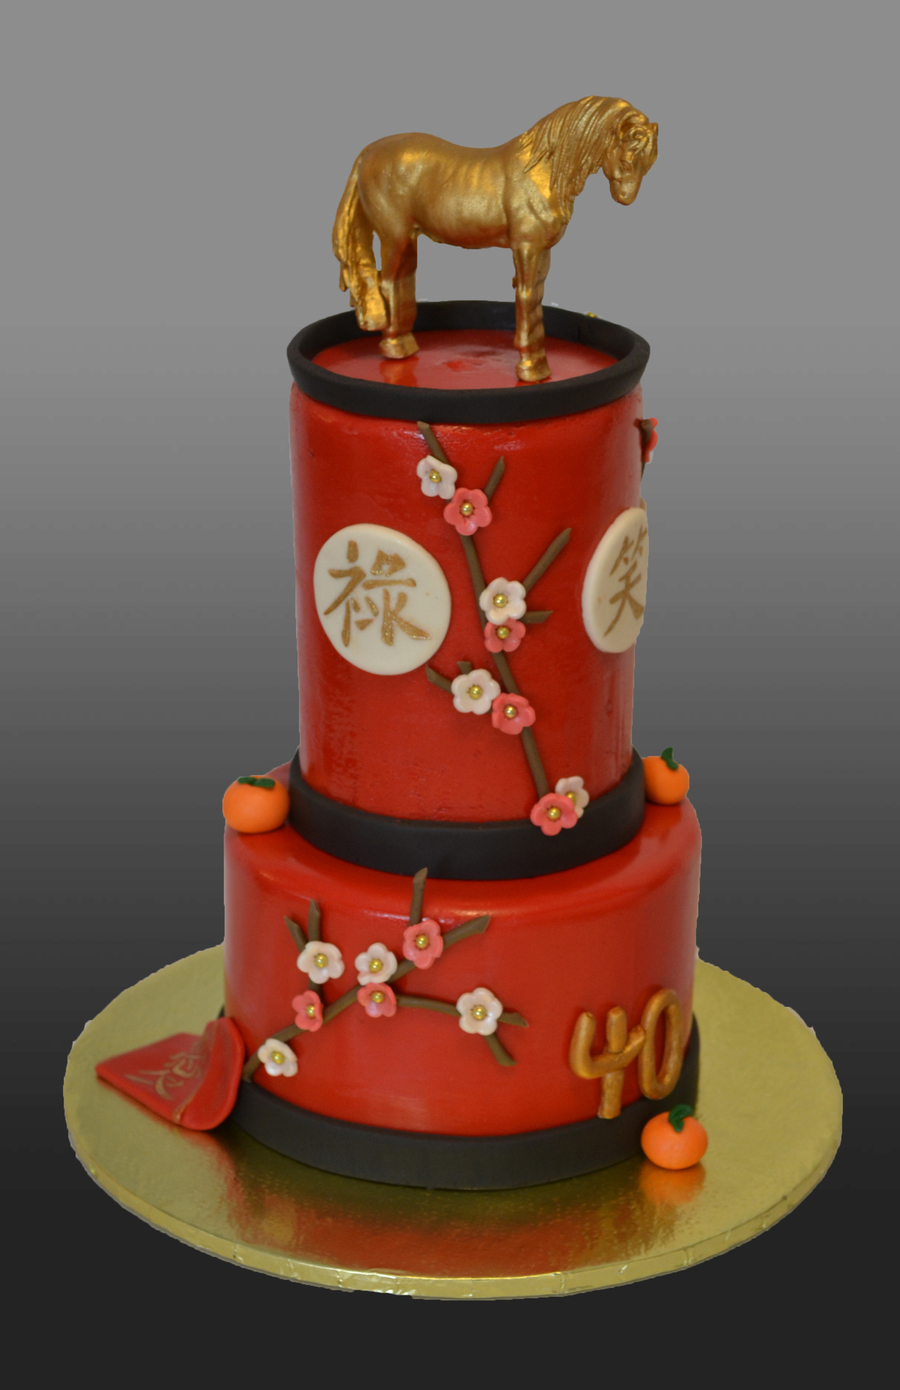 Chinese New Year Cake Idea